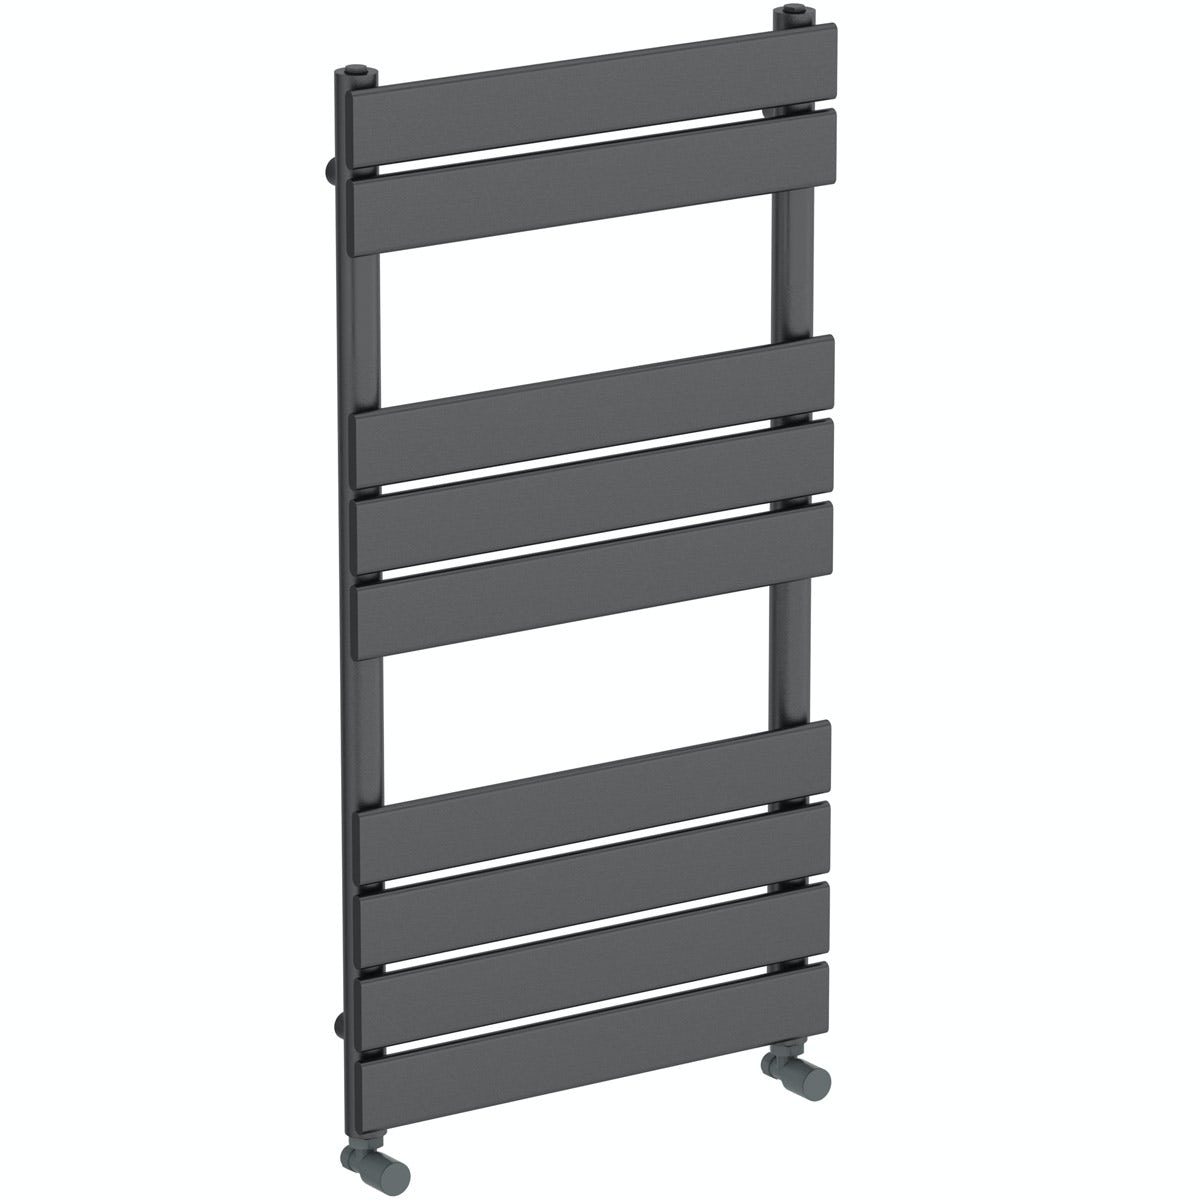 Orchard Wharfe anthracite heated towel rail 950 x 502